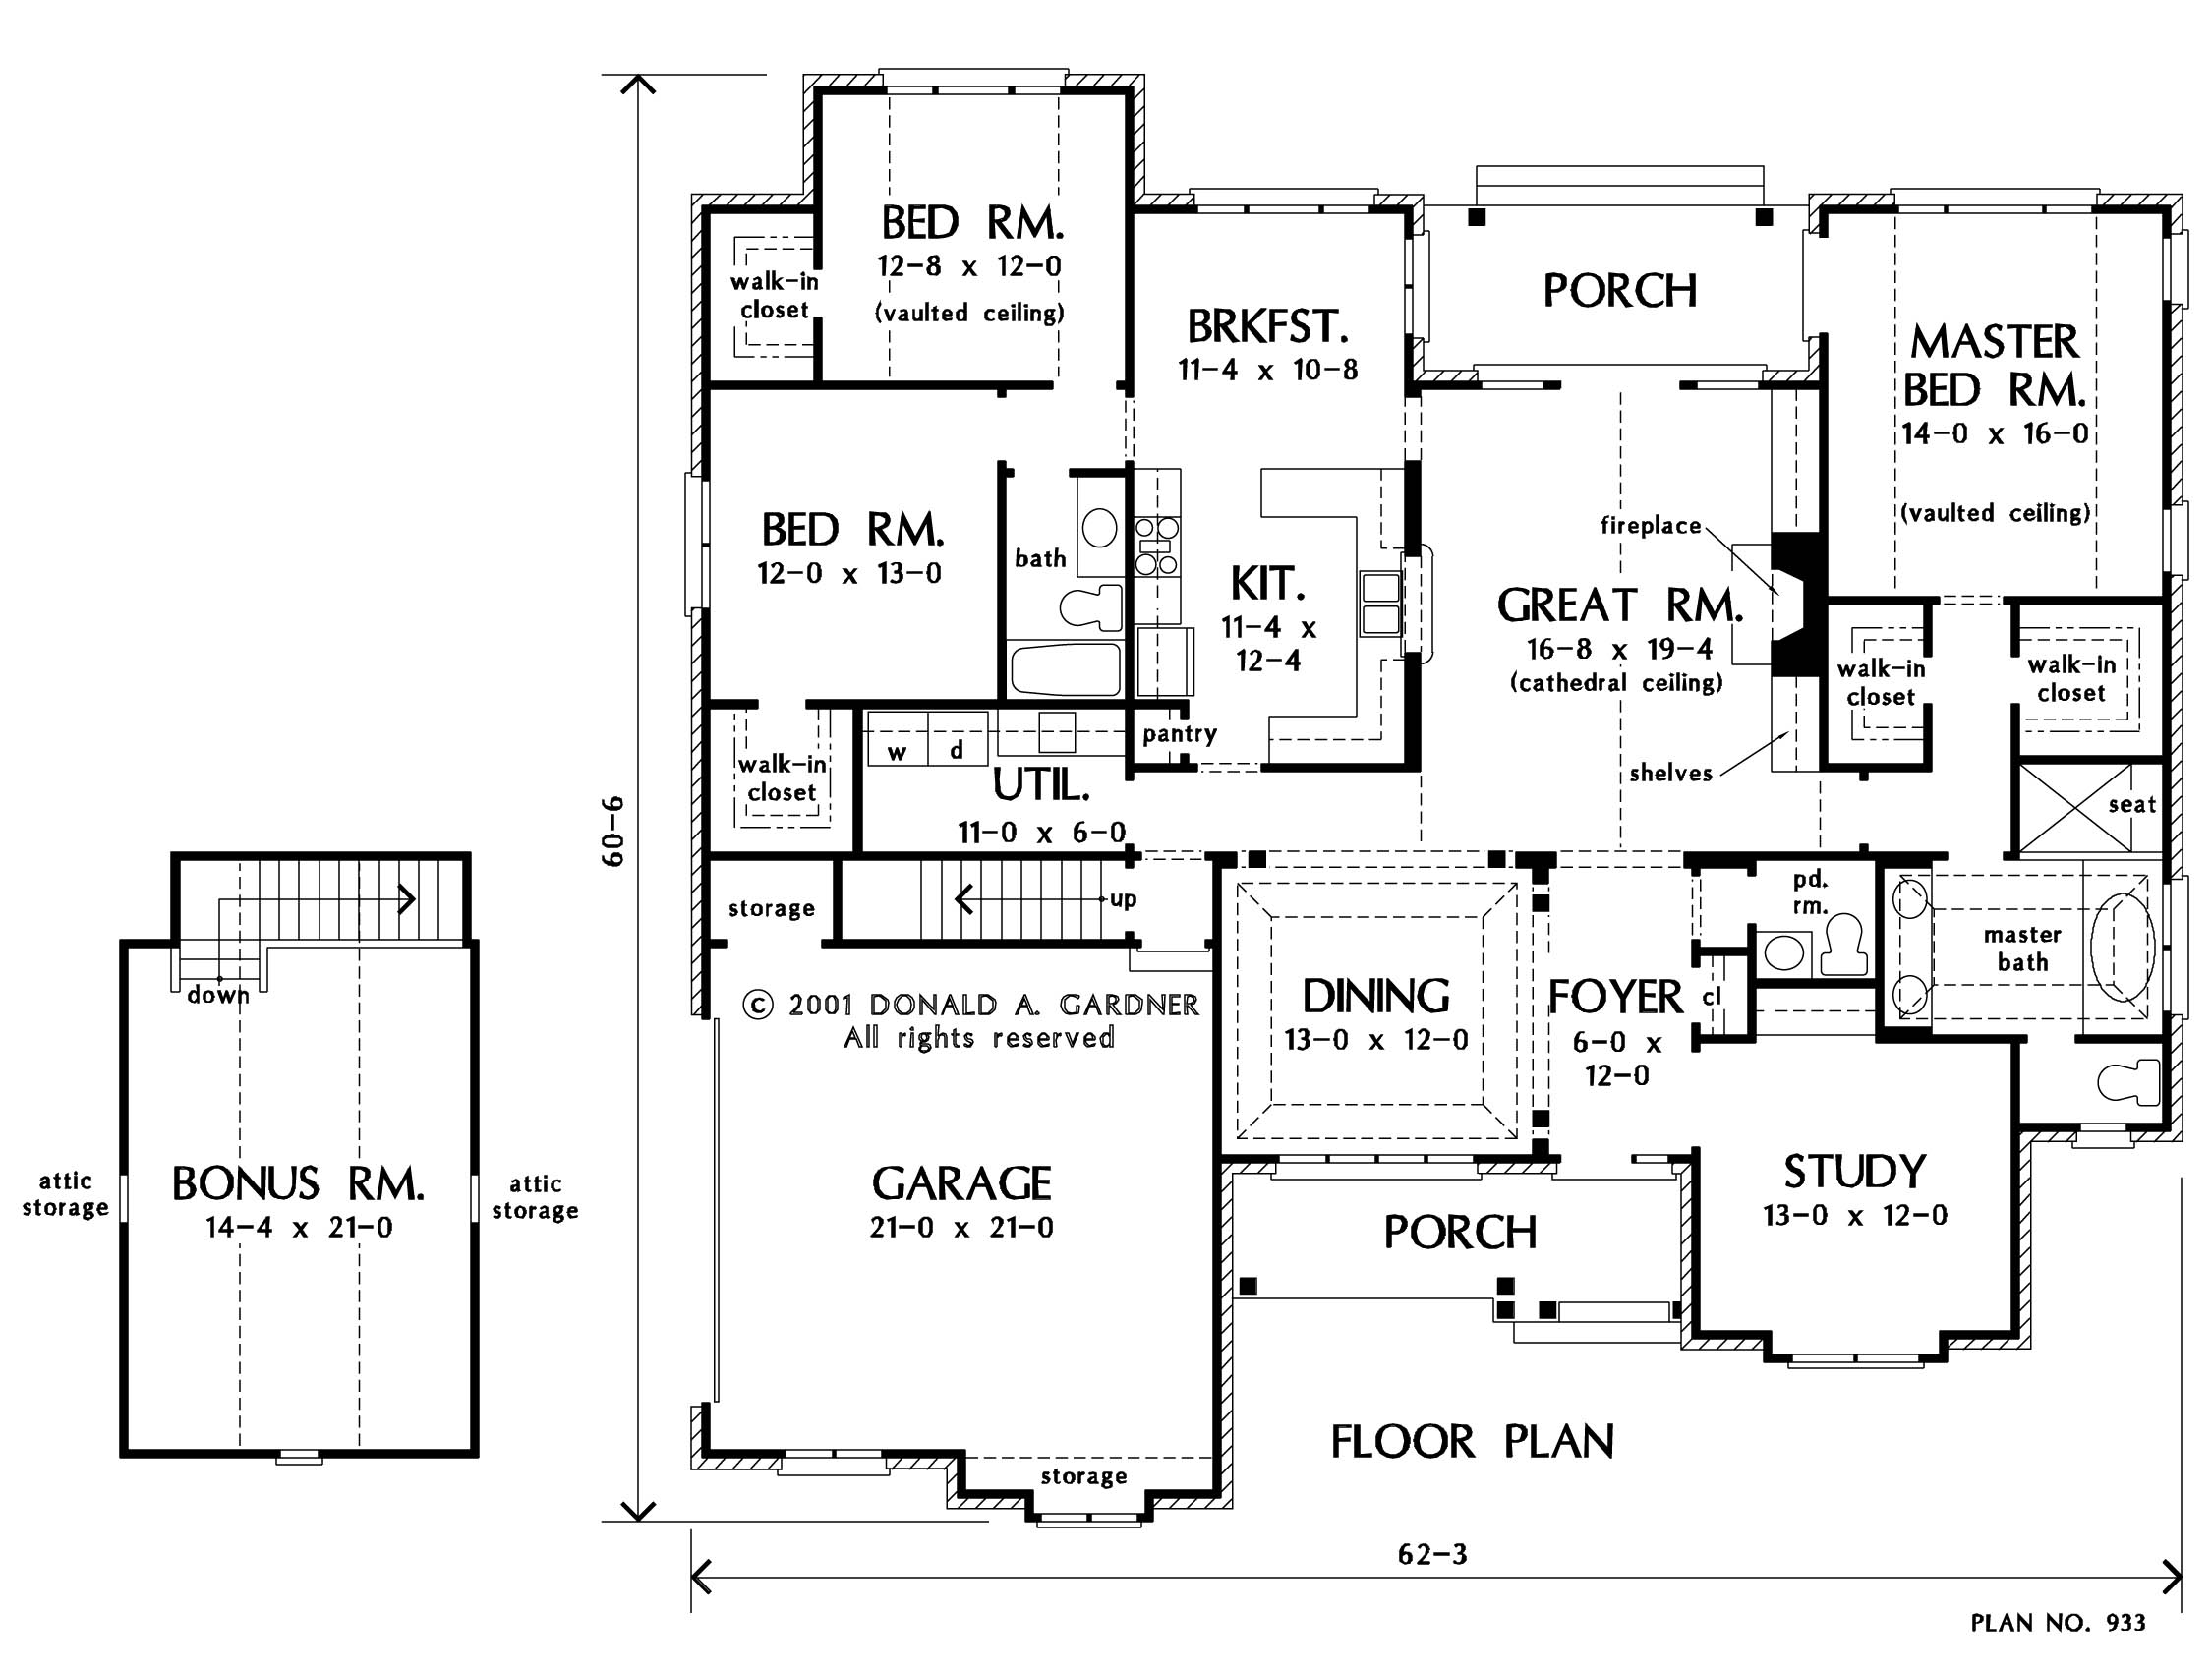 awesome 21 images new construction floor plans home new construction house floor plans trend home design and